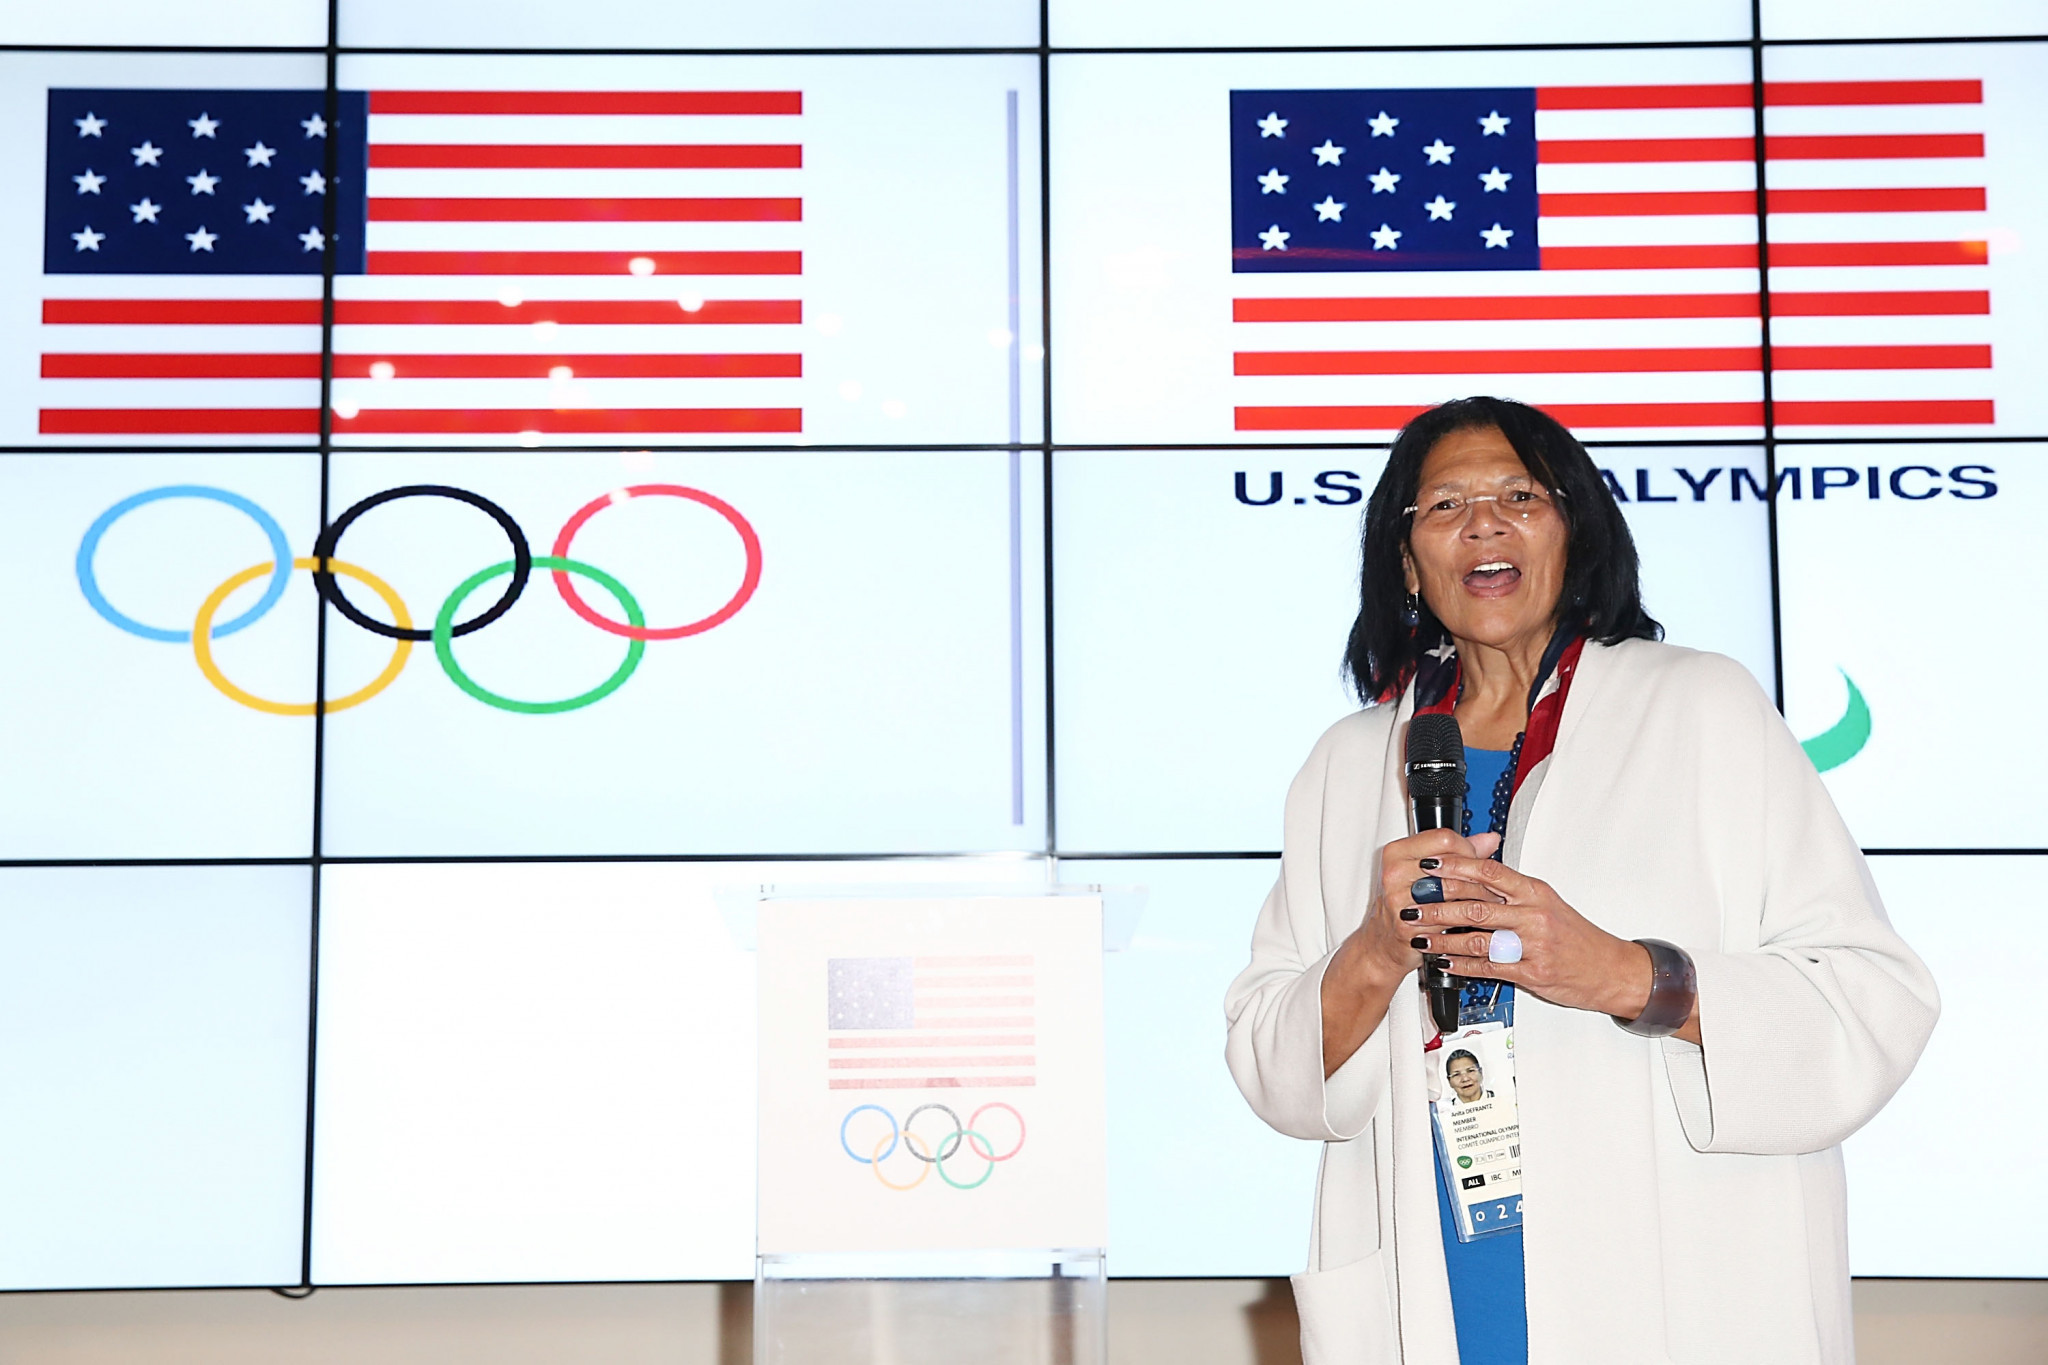 America's Anita DeFrantz is also expected to stand for vice-president during the IOC Session ©Getty Images